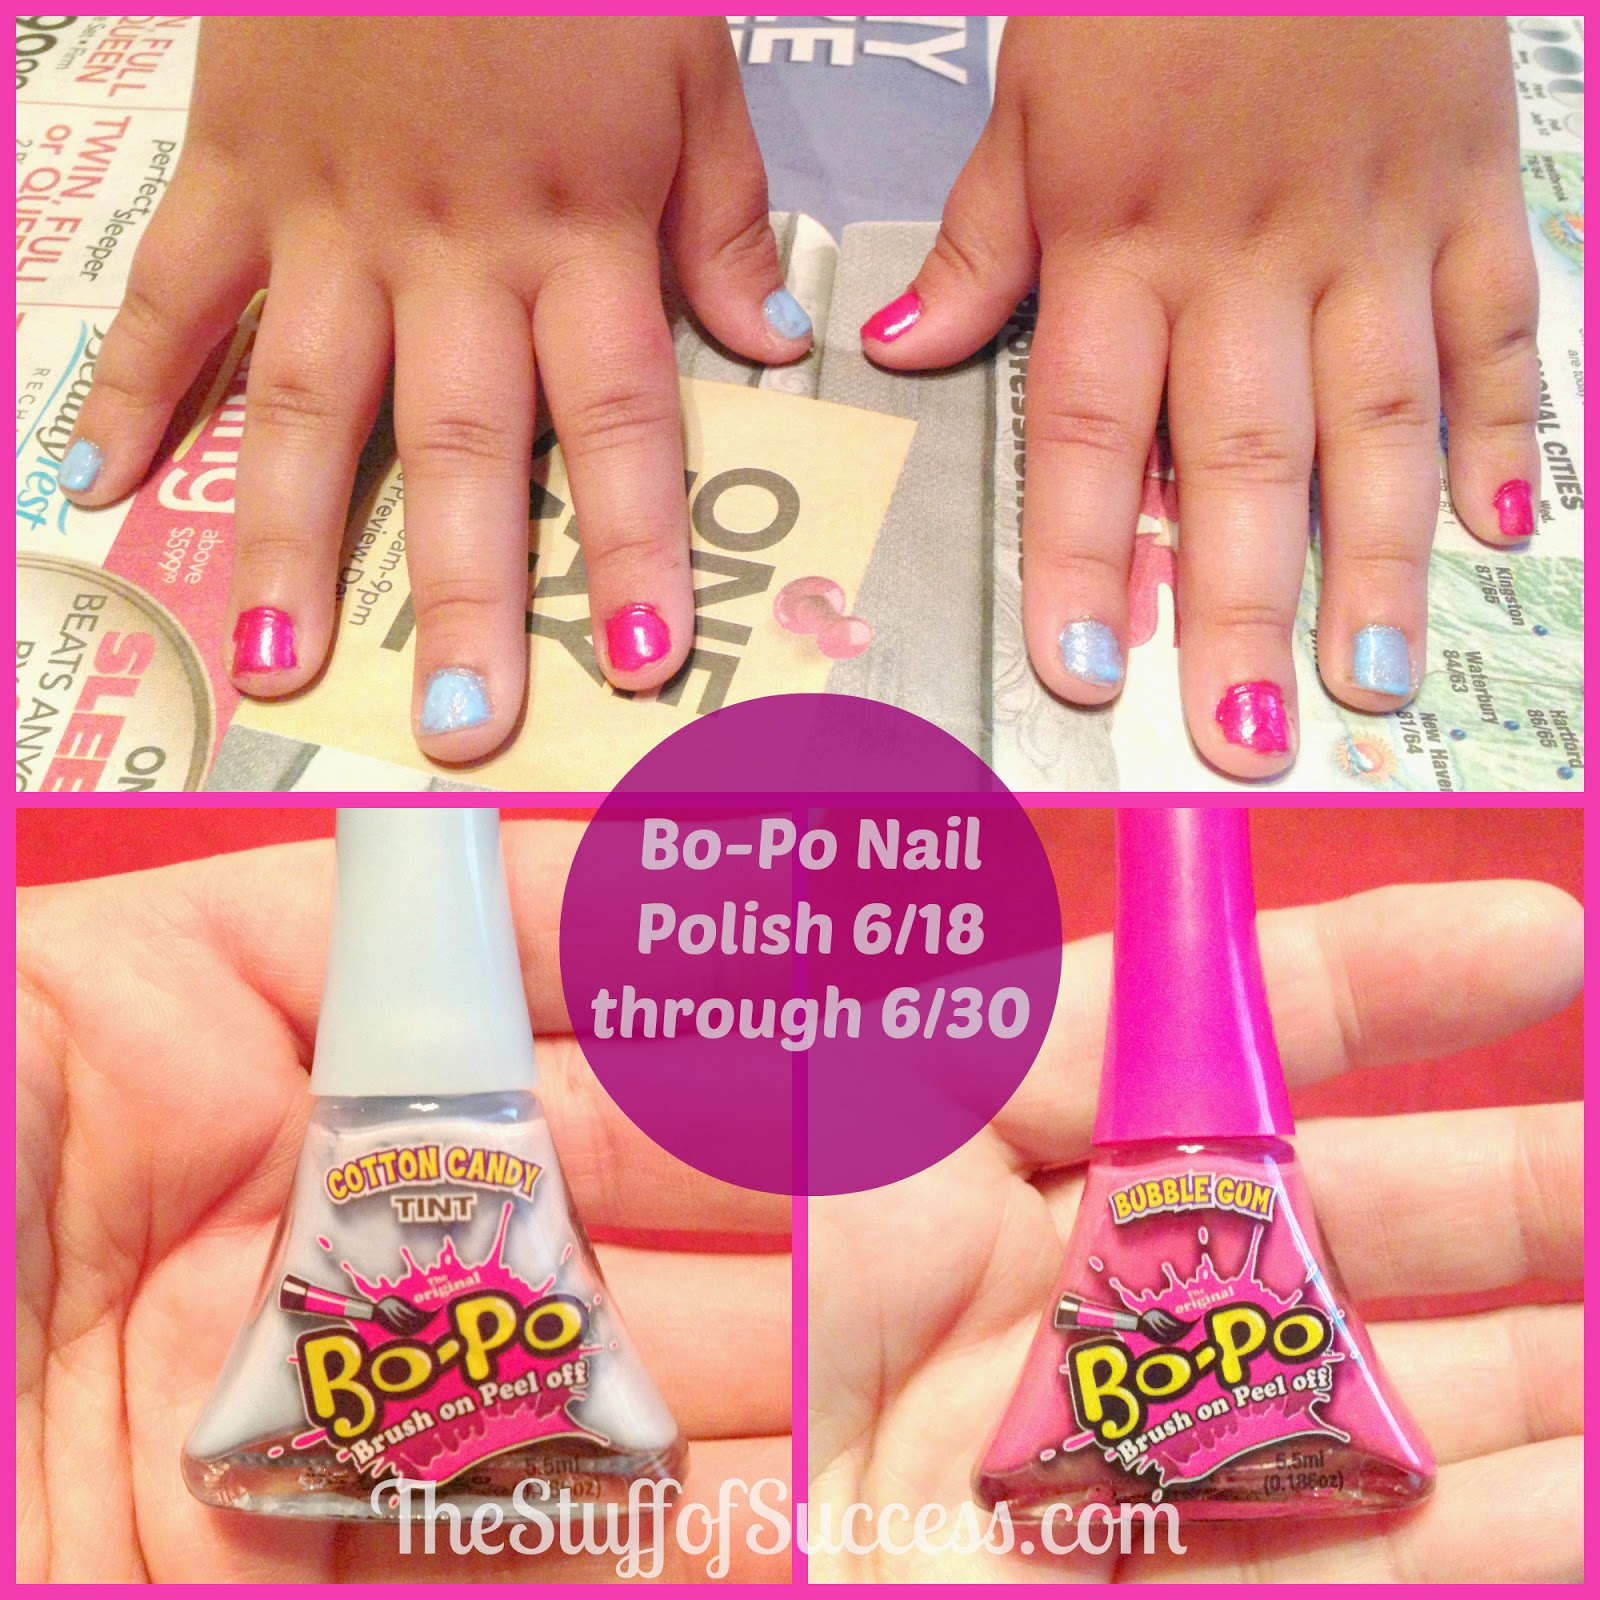 Bo-Po Brush On Peel Off Nail Polish Giveaway